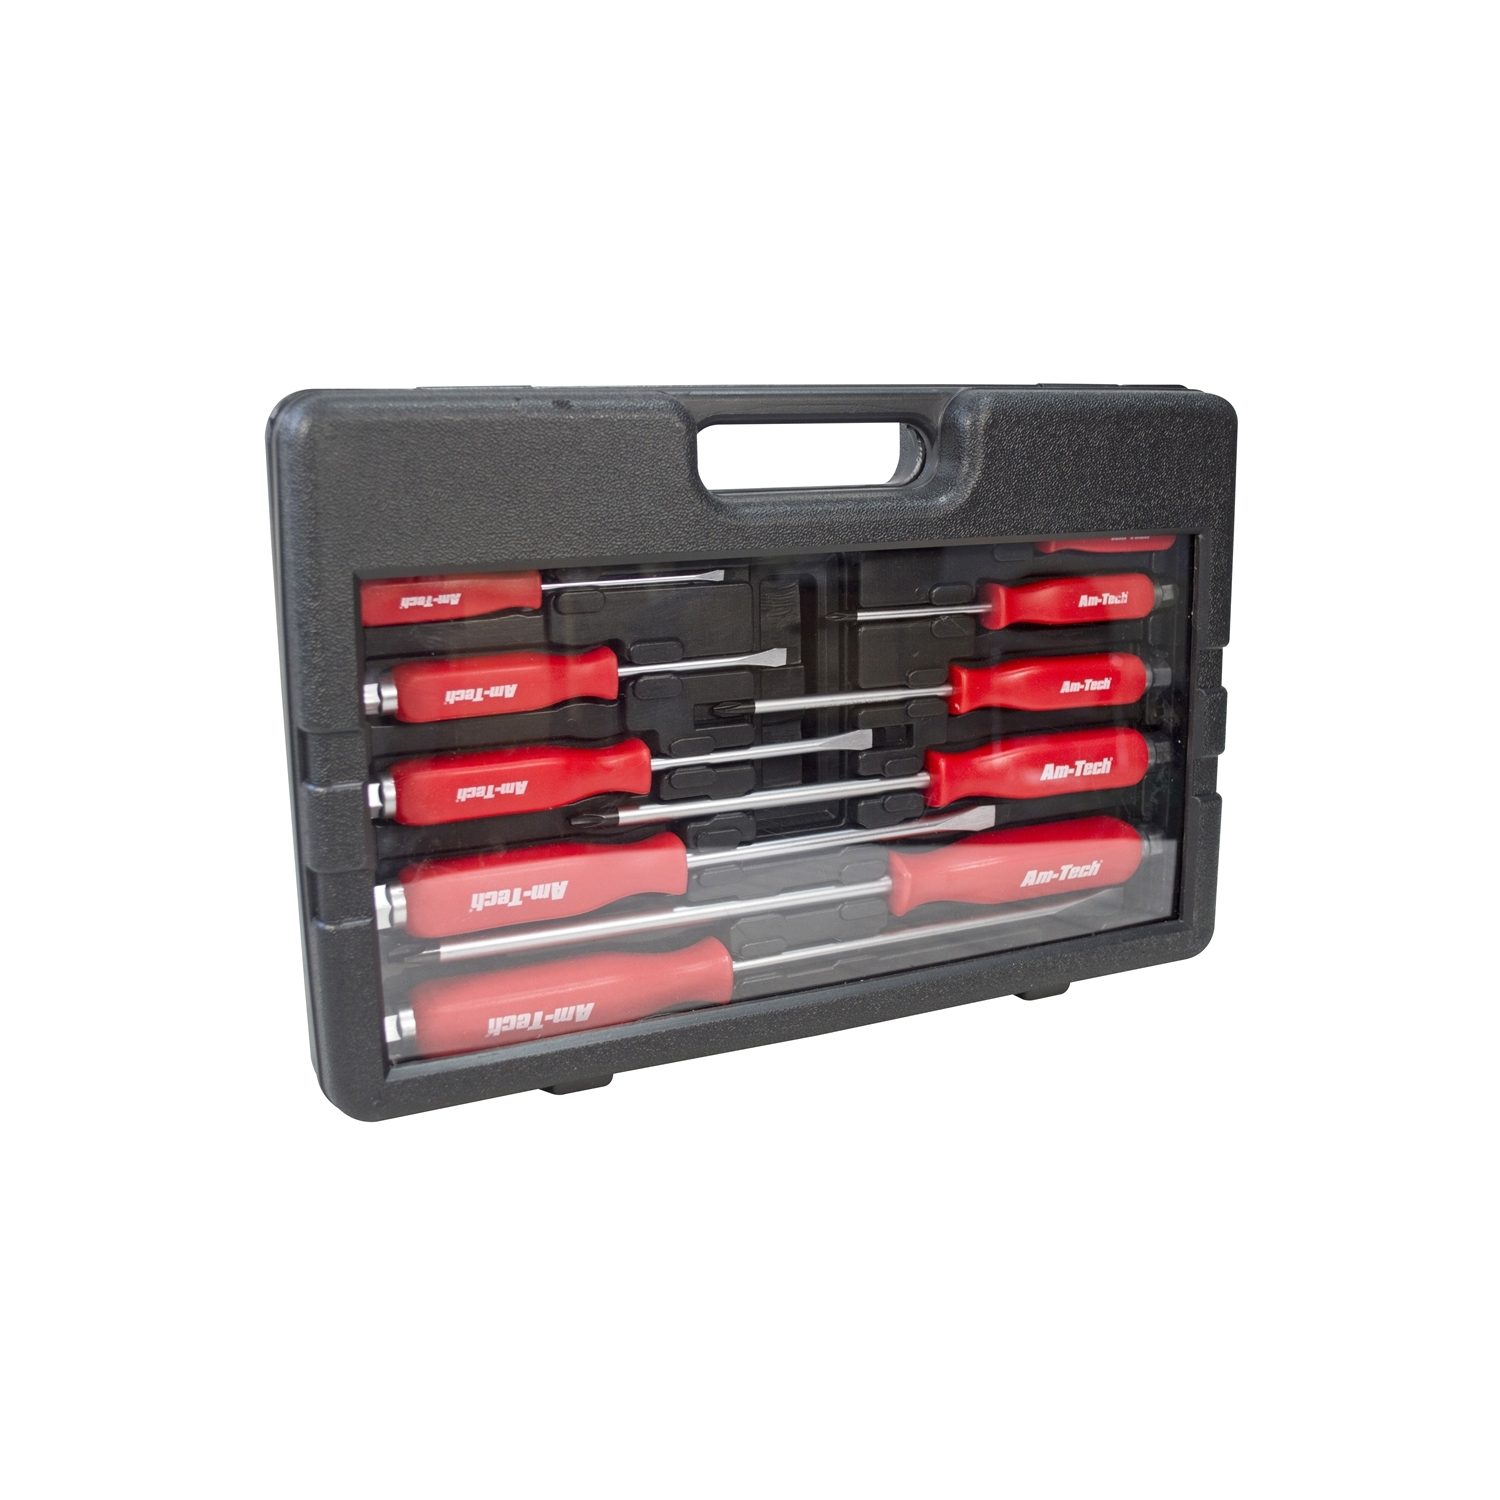 12 pc heavy duty engineers mechanics screwdriver set with hex bolsters case ebay. Black Bedroom Furniture Sets. Home Design Ideas